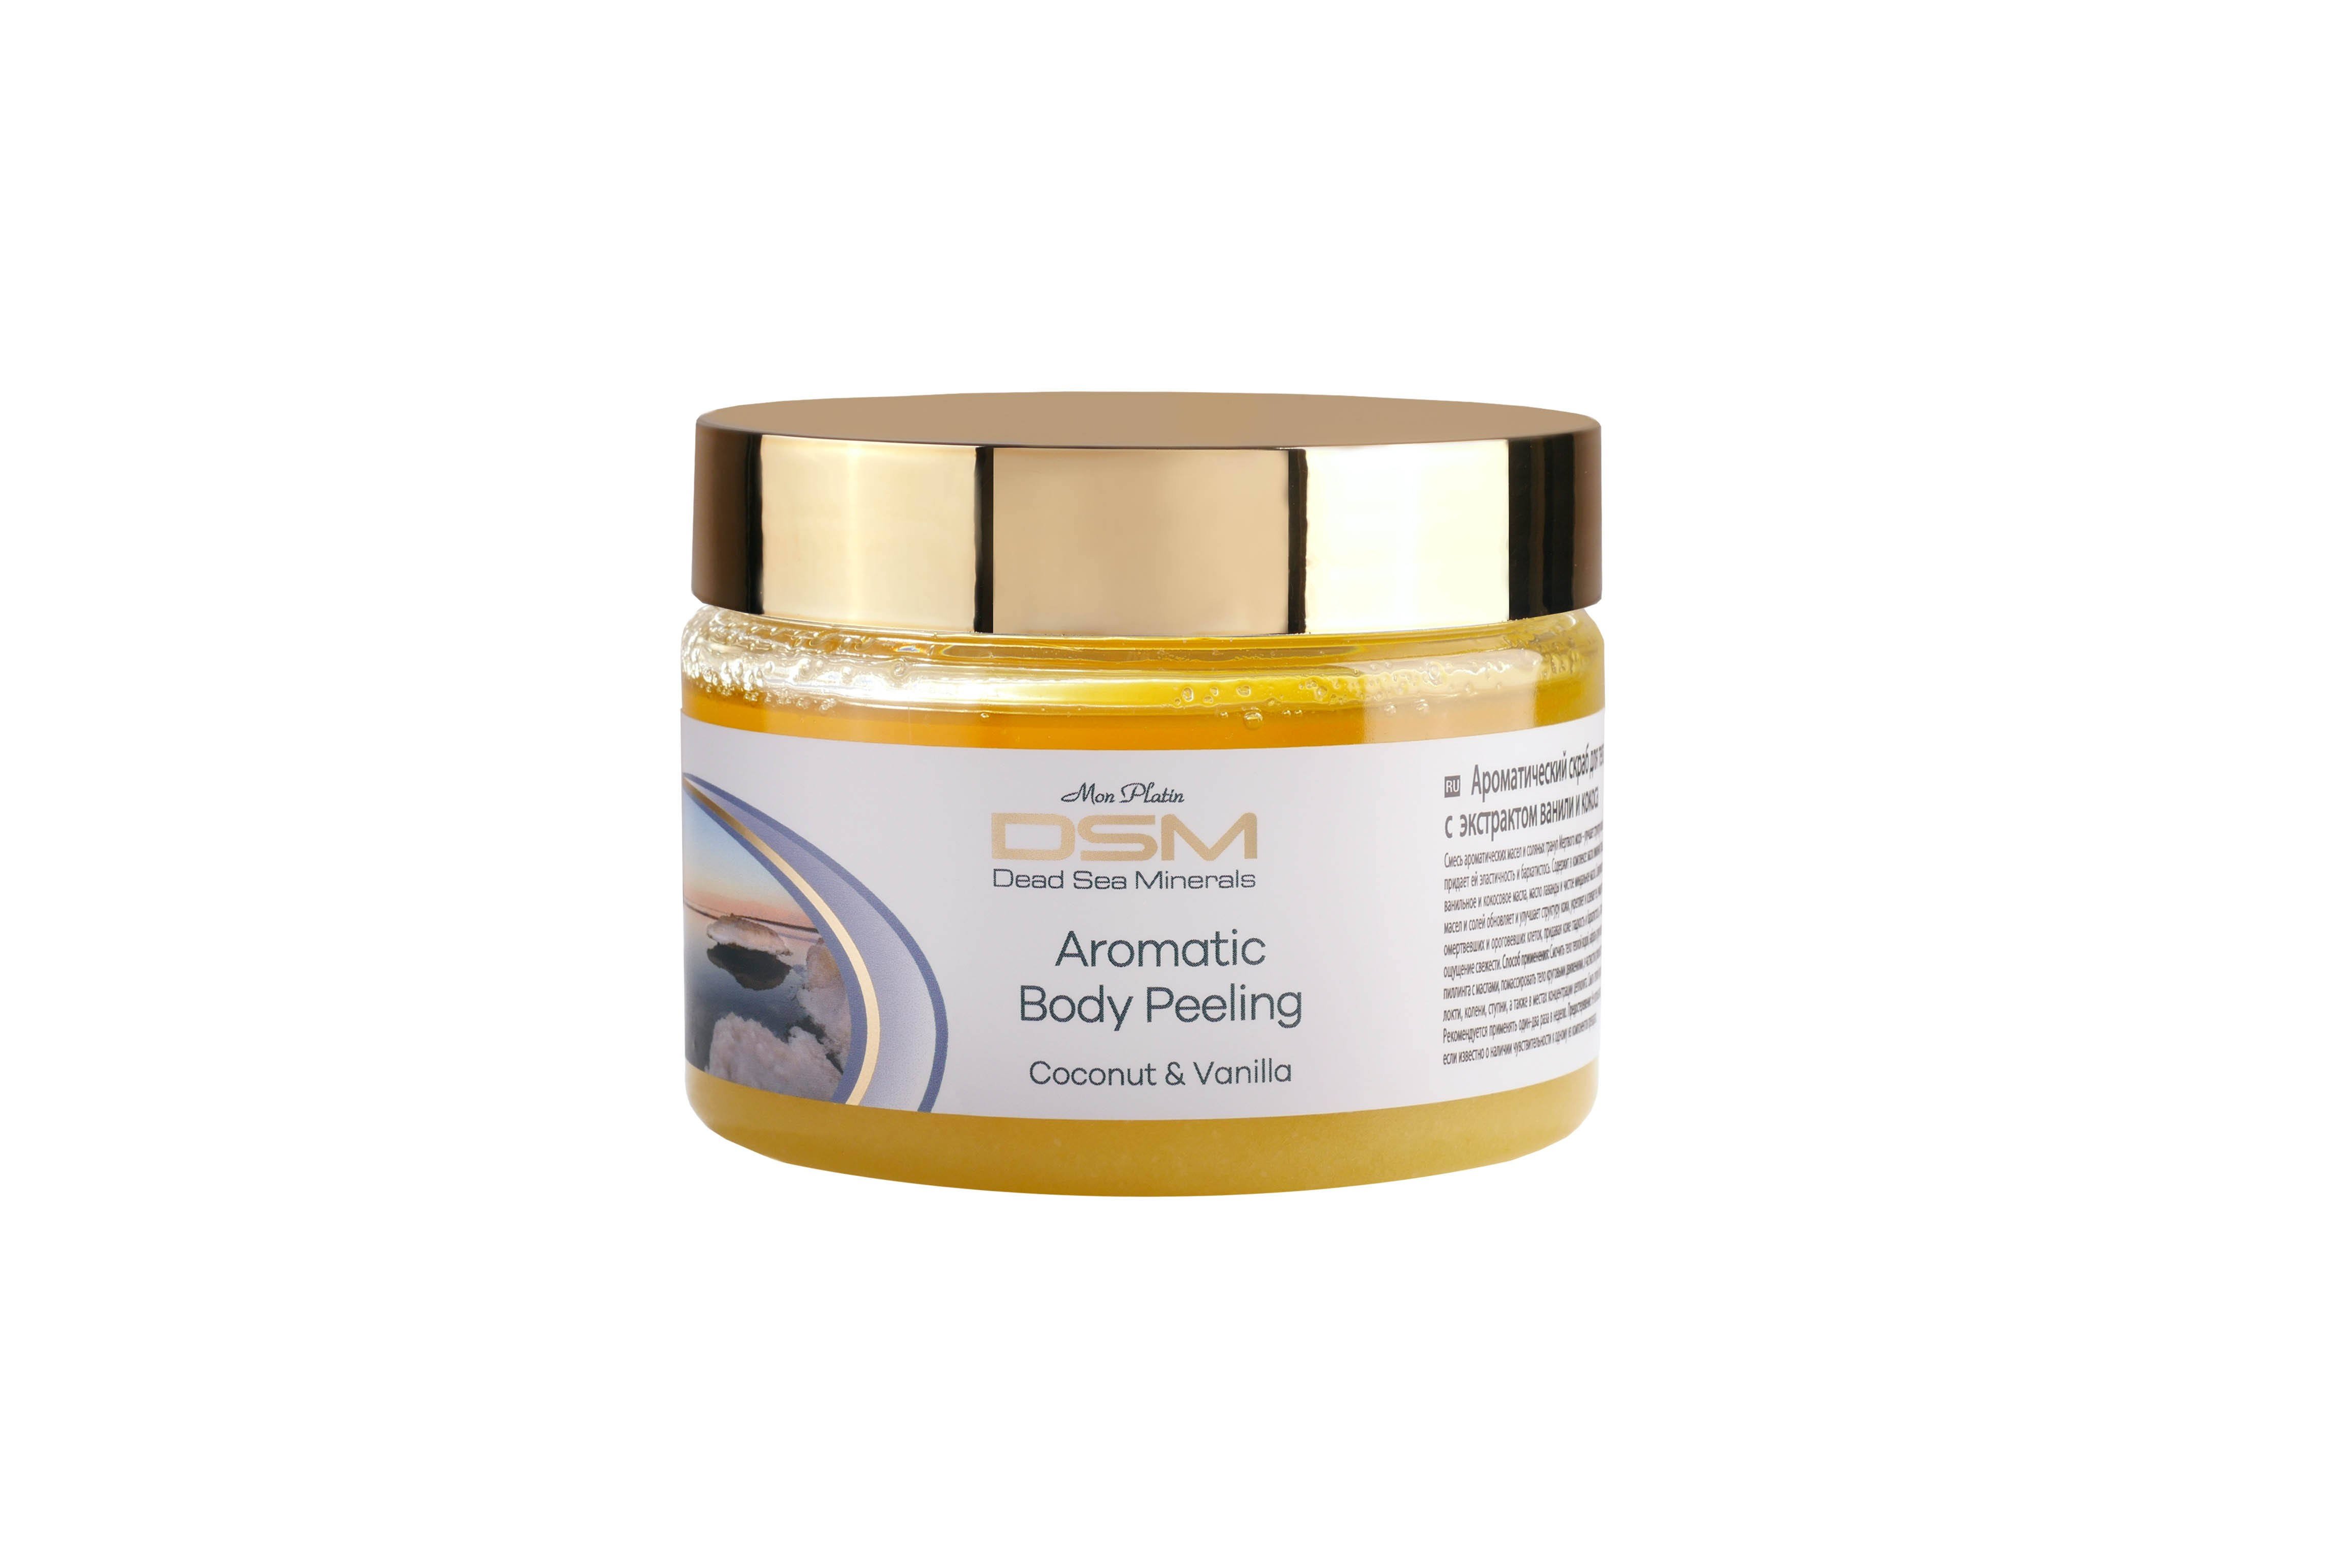 Aromatic Body Peeling scented with fine tropic odor of Coconut and Vanilla DSM